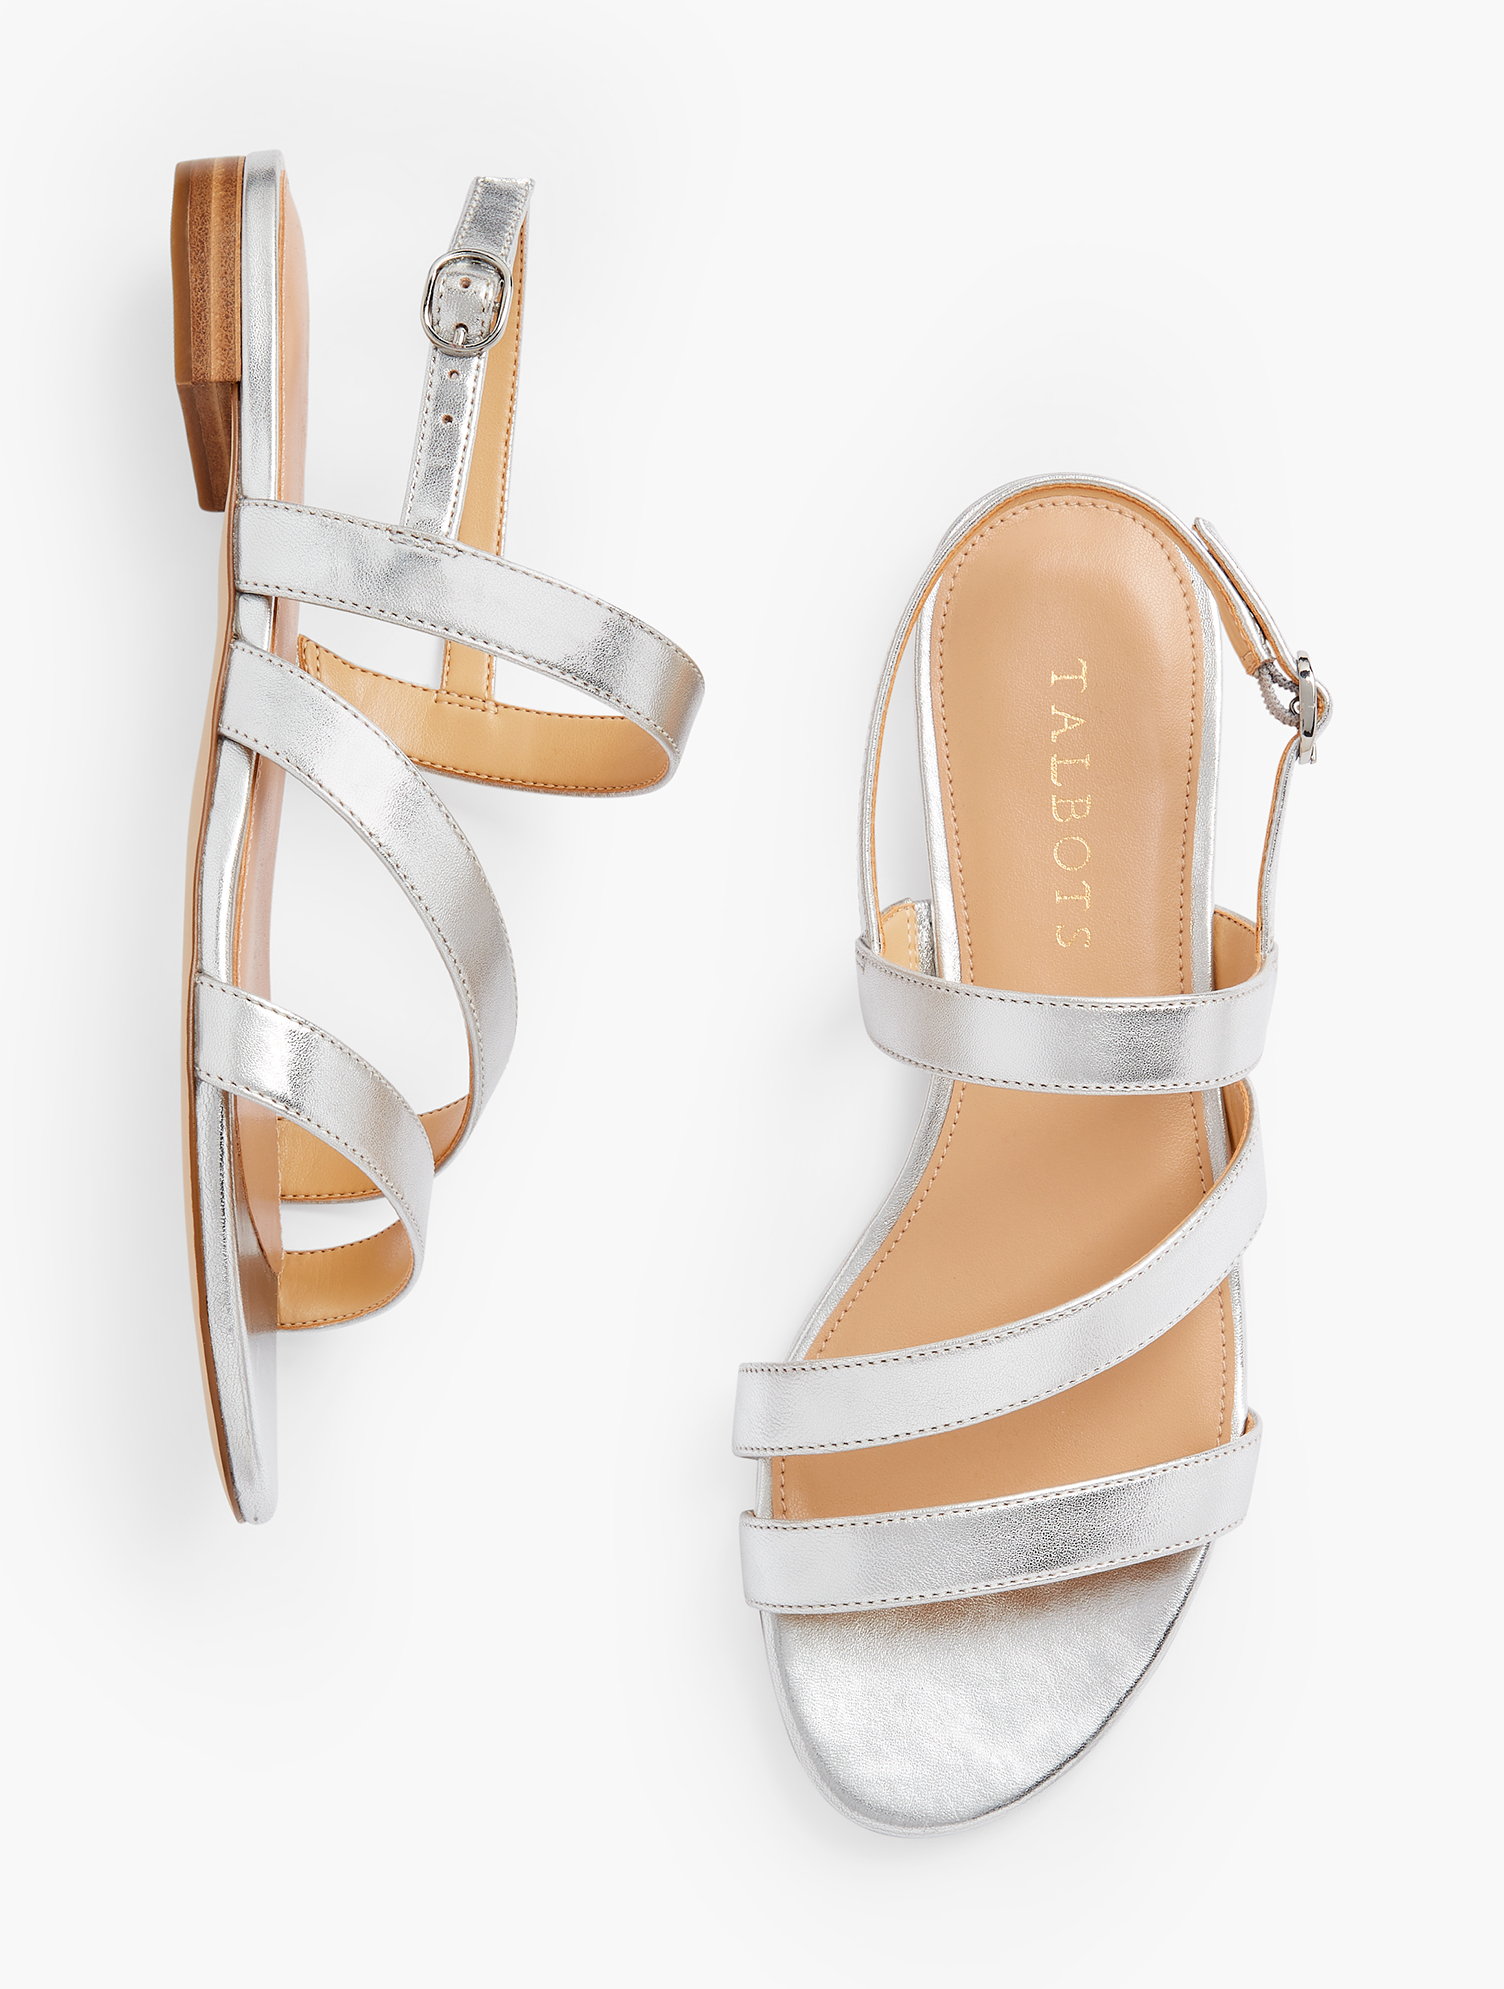 Easy elegance. Our Keri multi-strap sandals were made to be worn dressy or casual. Features 1/2 inches heelFlexible Non Skid OutsoleShiny Nickle Hardware3Mm Memory Foam FootbedImported Material: 100% Leather Keri Multi Strap Sandals - Metallic - Silver - 9M Talbots